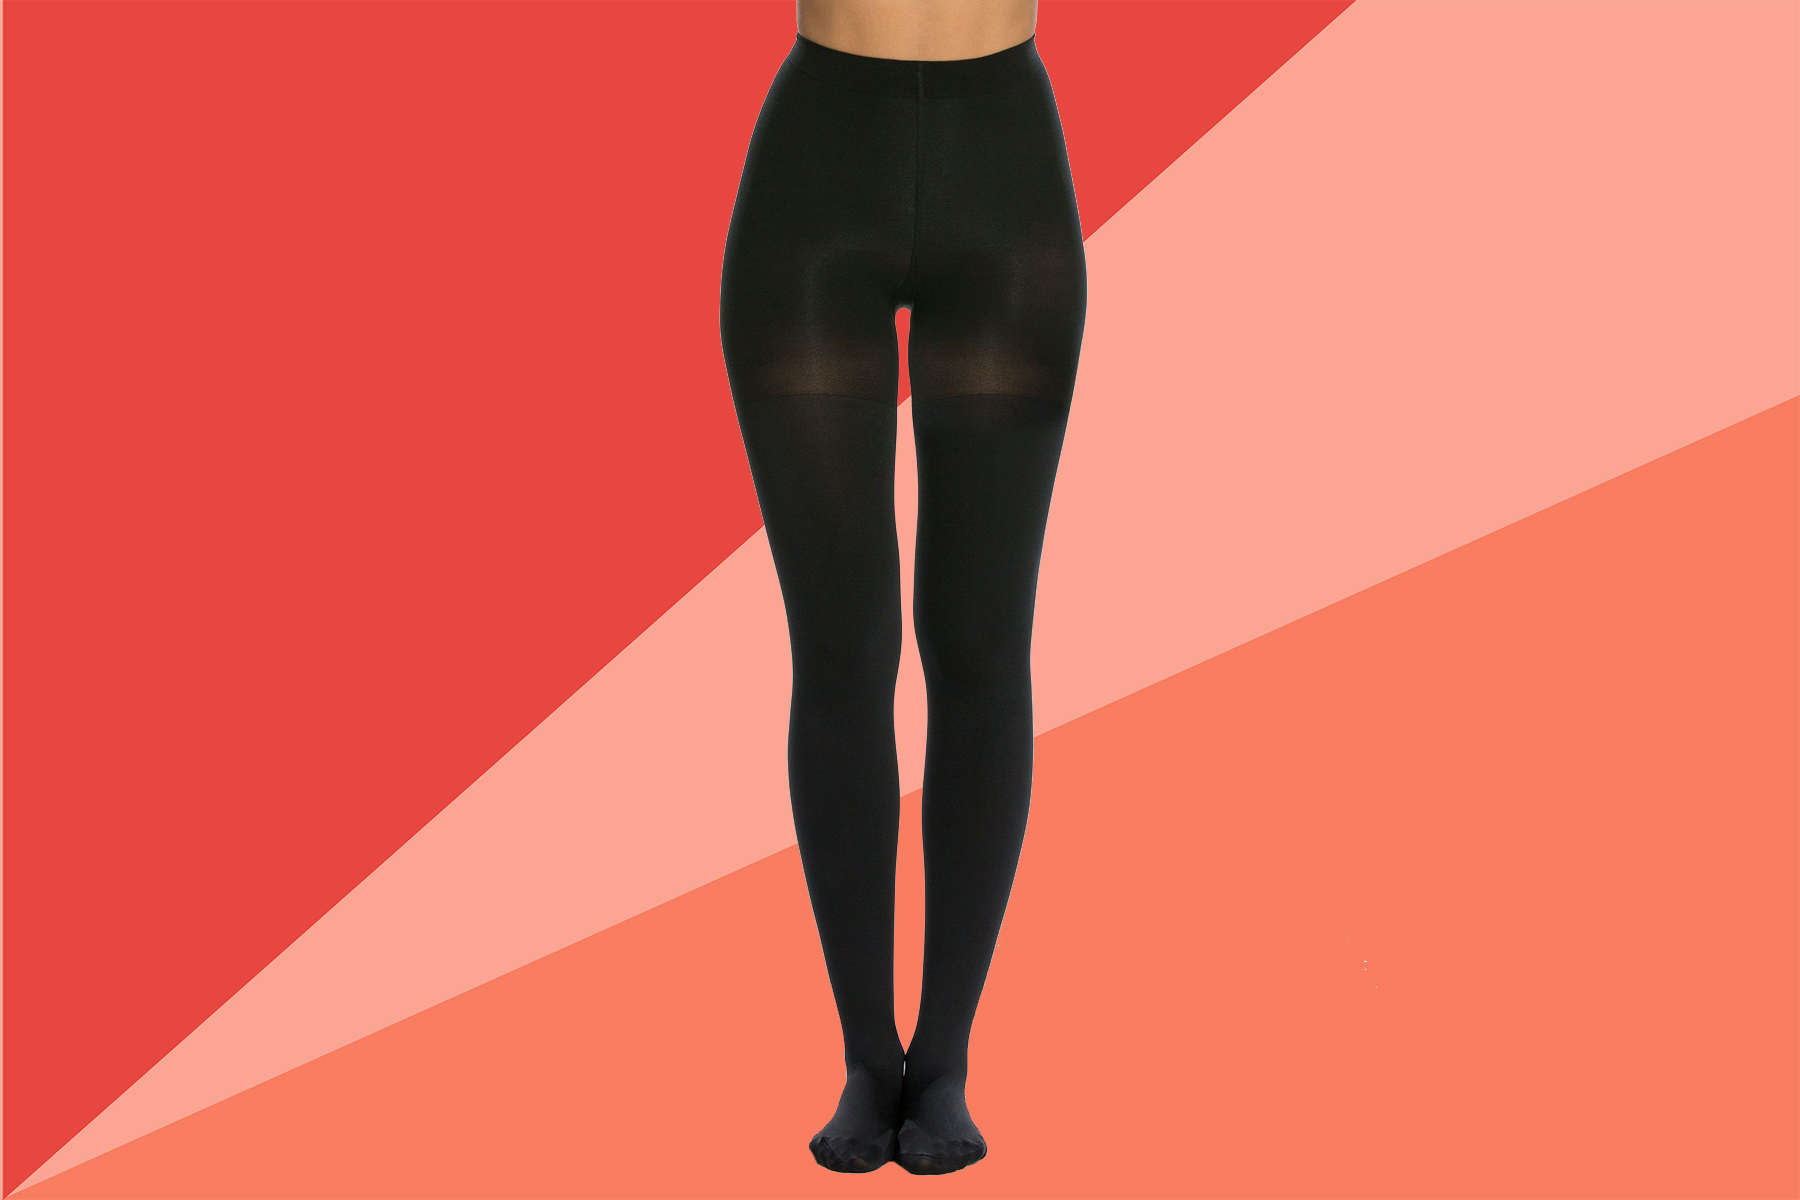 Tout: Spanx Luxe Leg Blackout Mid-Thigh Shaping Tights